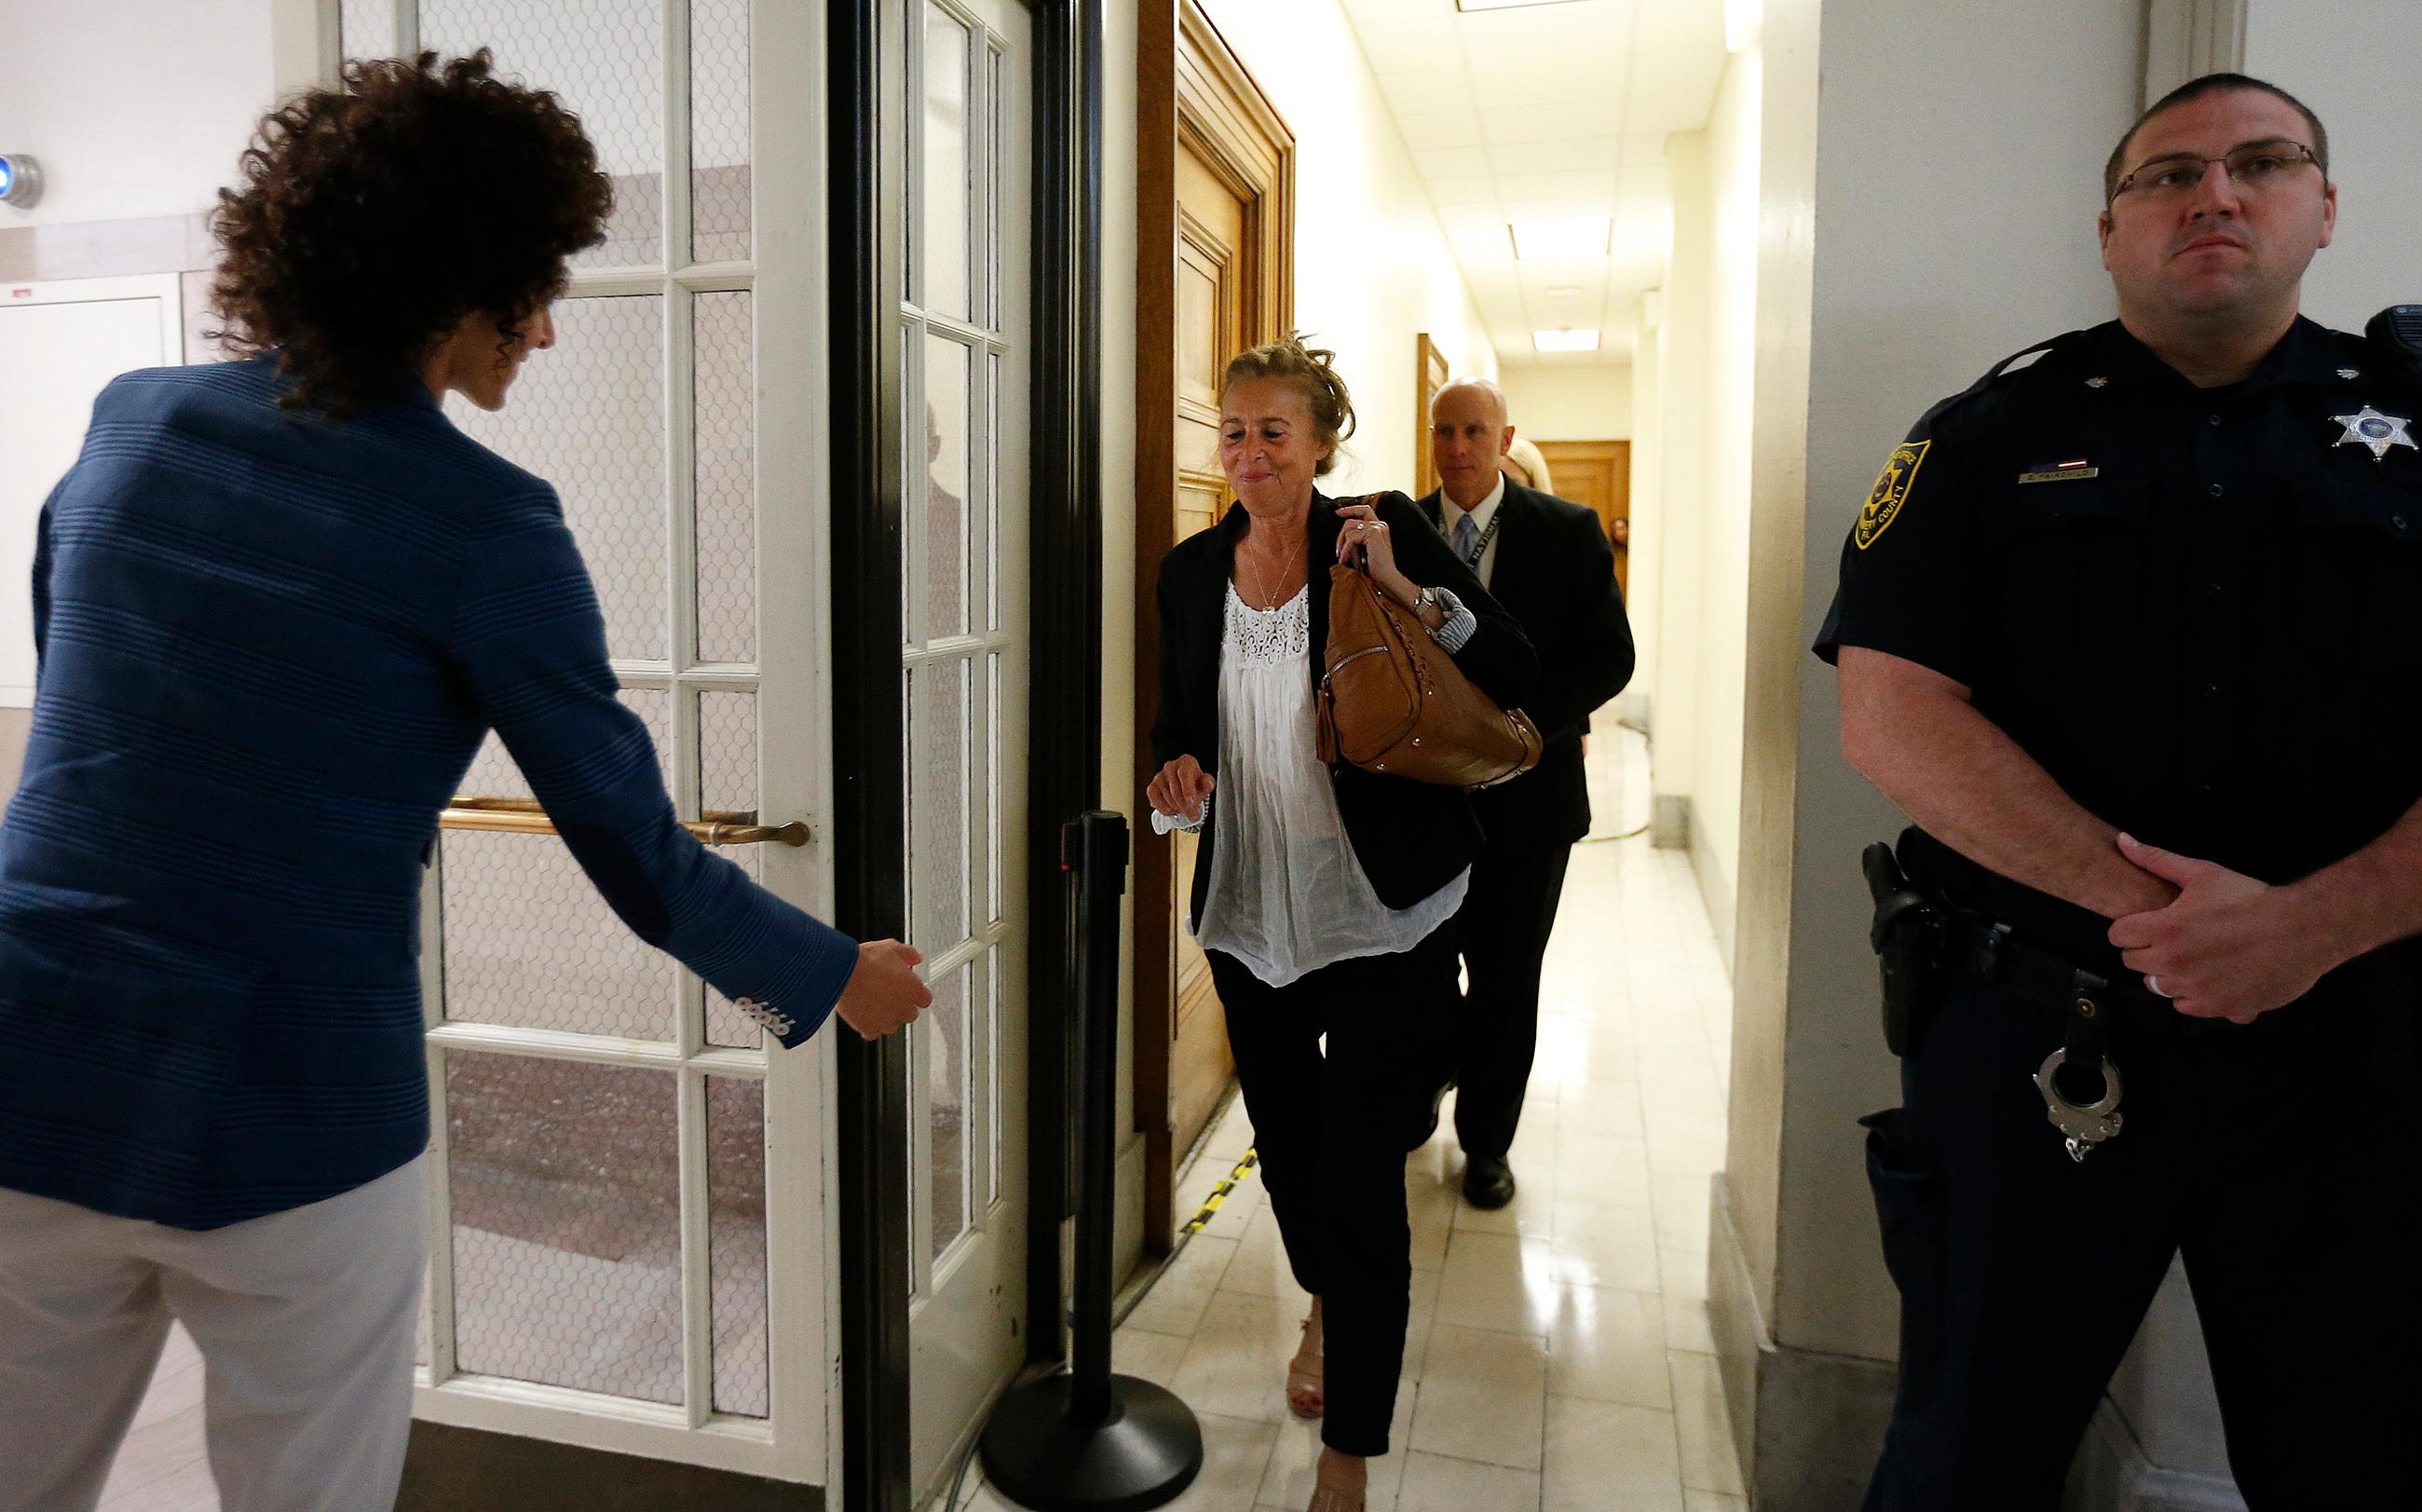 Andrea Constand, left, waits for her mother, Gianna Constand, center, outside the courtroom after closing arguments in Bill Cosby's sexual assault trial at the Montgomery County Courthouse in Norristown, Pa., Monday, June 12, 2017. Both women testified in the trial. (David Maialetti/The Philadelphia Inquirer via AP, Pool)